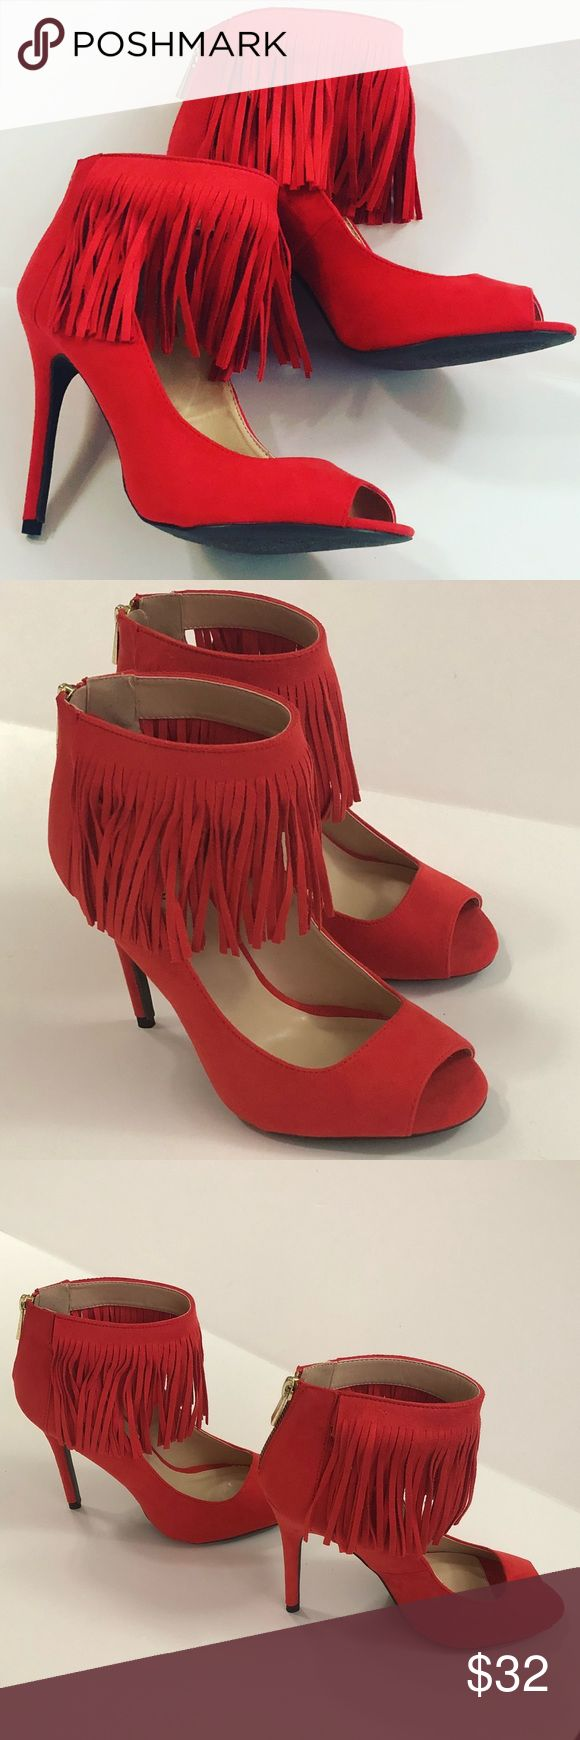 🆕Beautiful Red Fringe Heels Perfect for anytime use them as a neutral. These would really spruce up a tan or beige outfit. These would even be stunning with a gold sequin dress. Or wear them with a crisp white shirt and a short jean skirt. Be fabulous and get you a pair before they sell out. Made out of a suede like Material with 5 inch heels. Evolving Always Shoes Heels